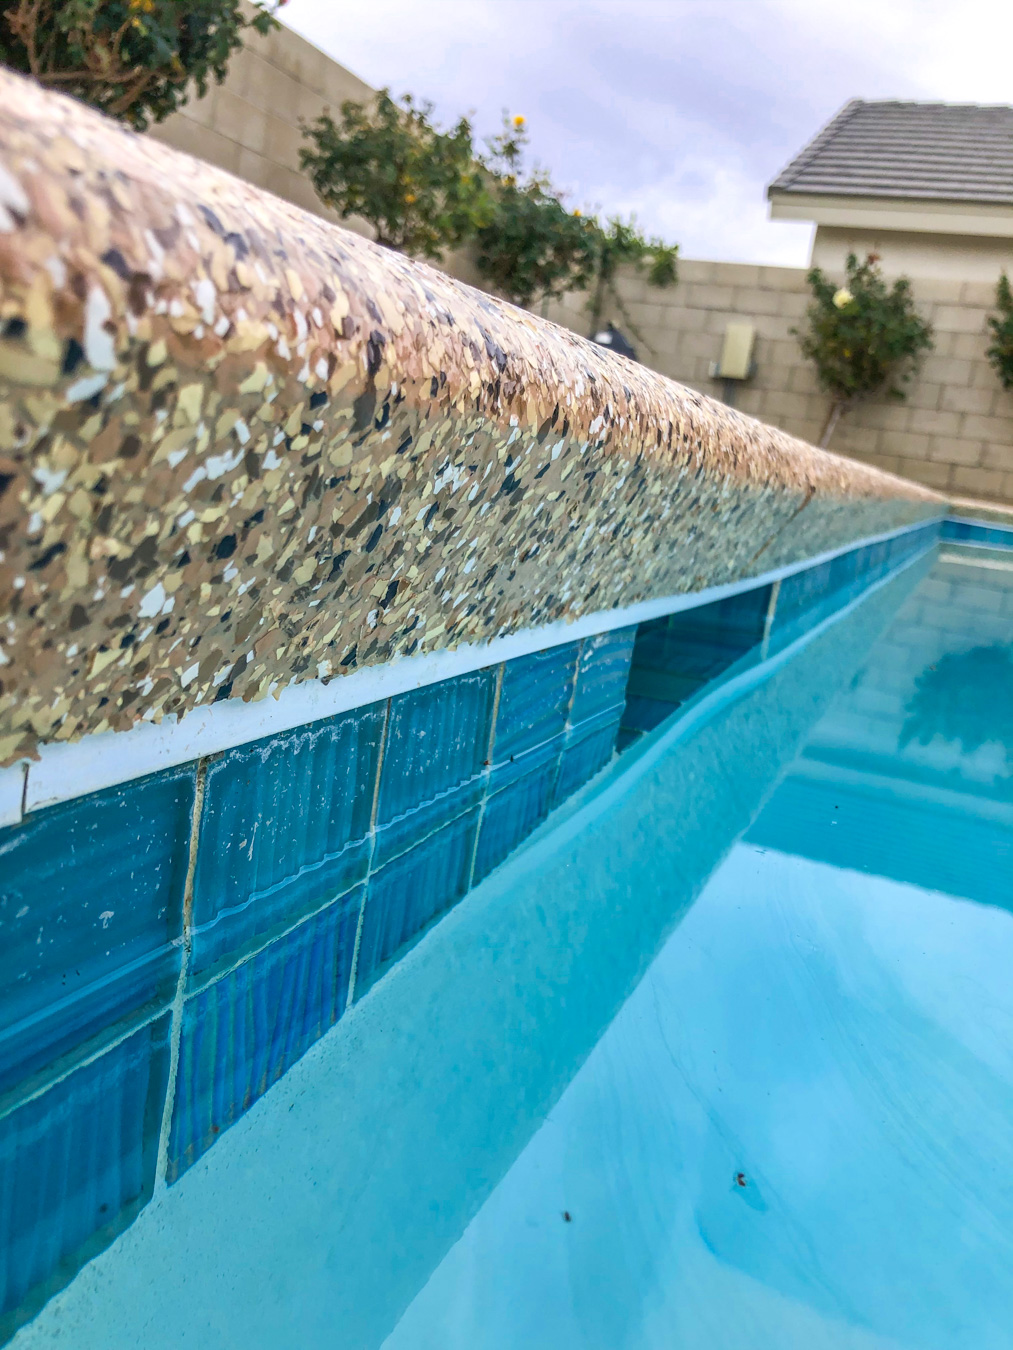 Close-up of Concrete Coating on a Pool Deck